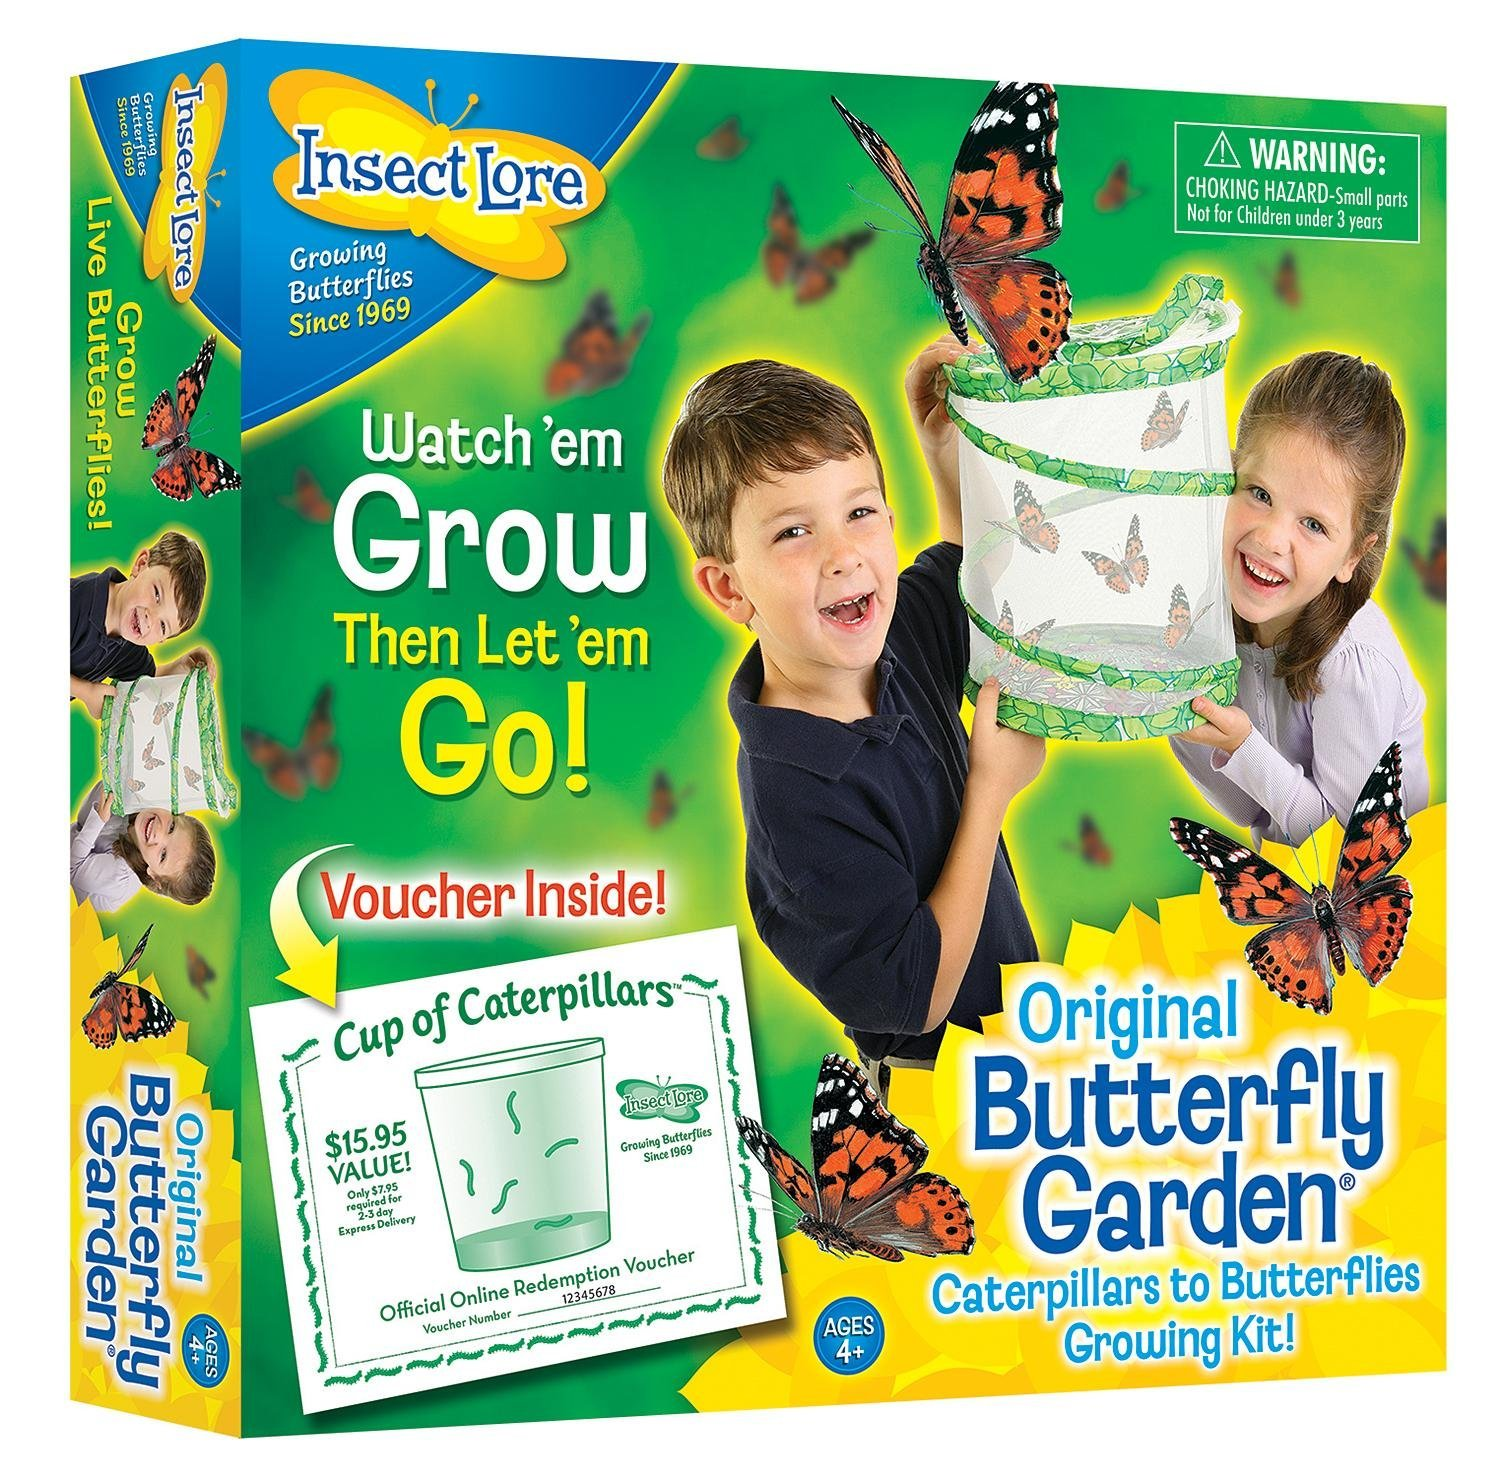 Find great deals on eBay for insect lore live butterfly garden. Shop with confidence.